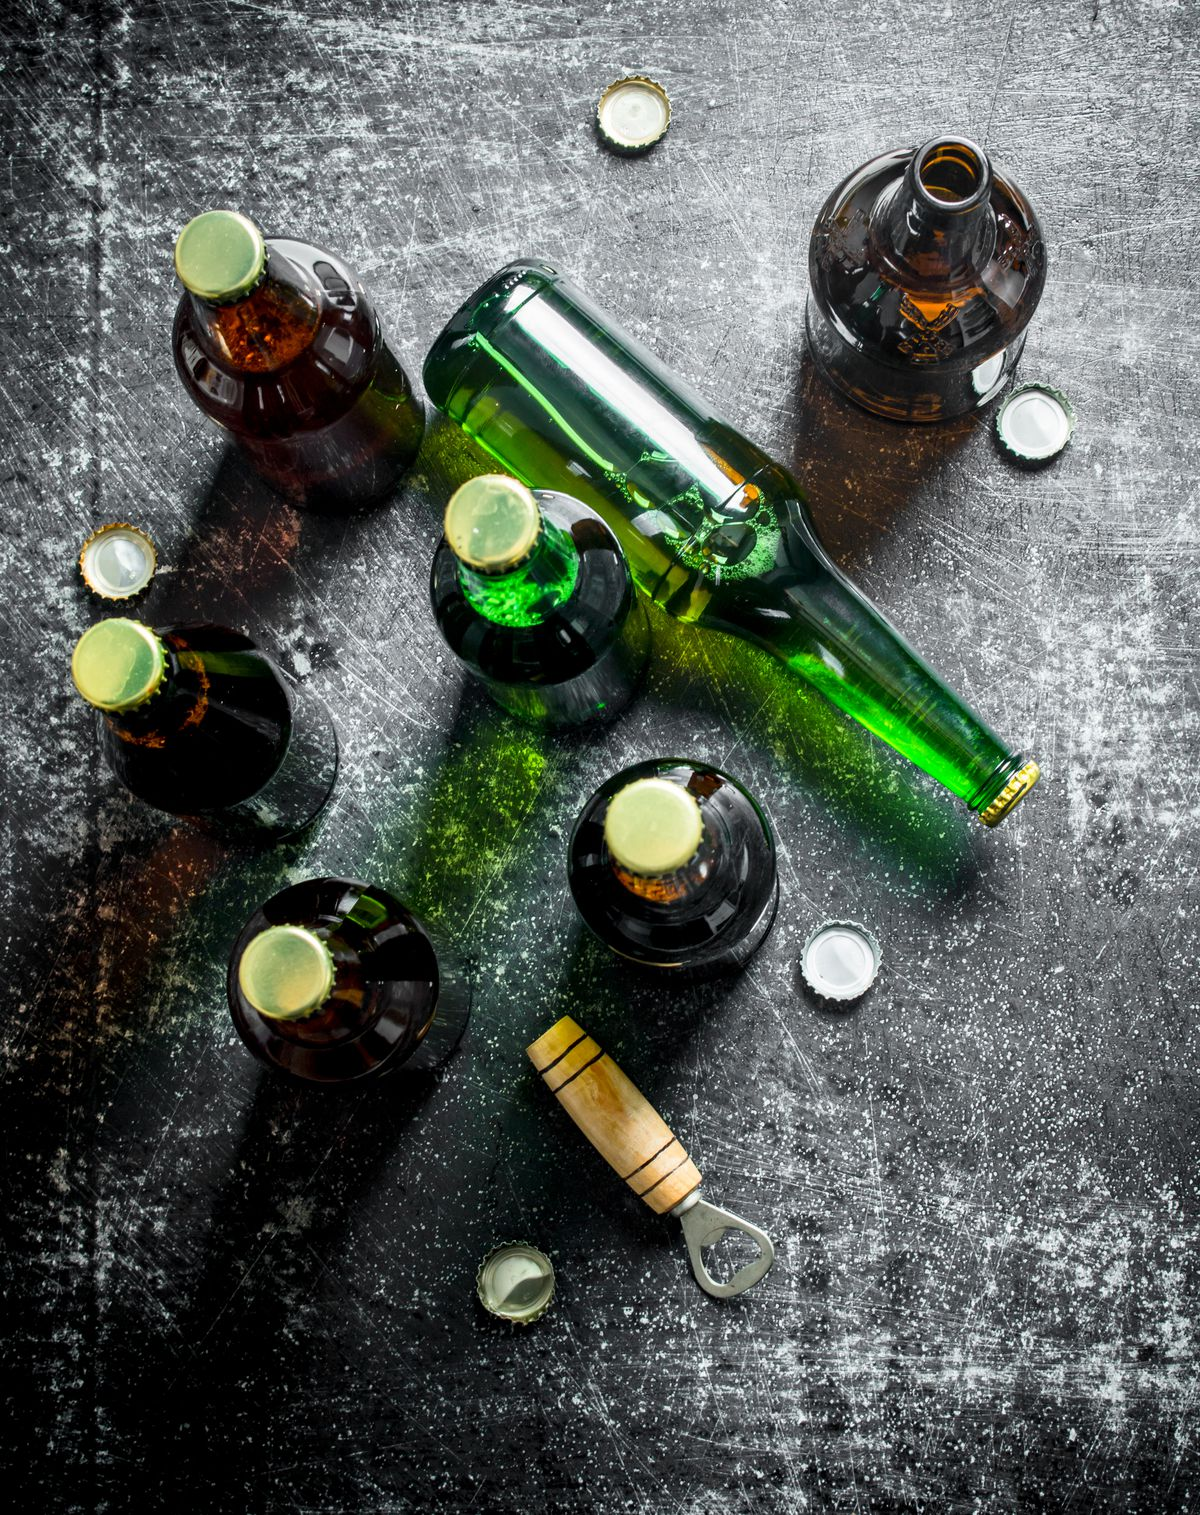 Seven beer bottles, some empty and some full, sit on a table with bottle caps and a bottle opener.